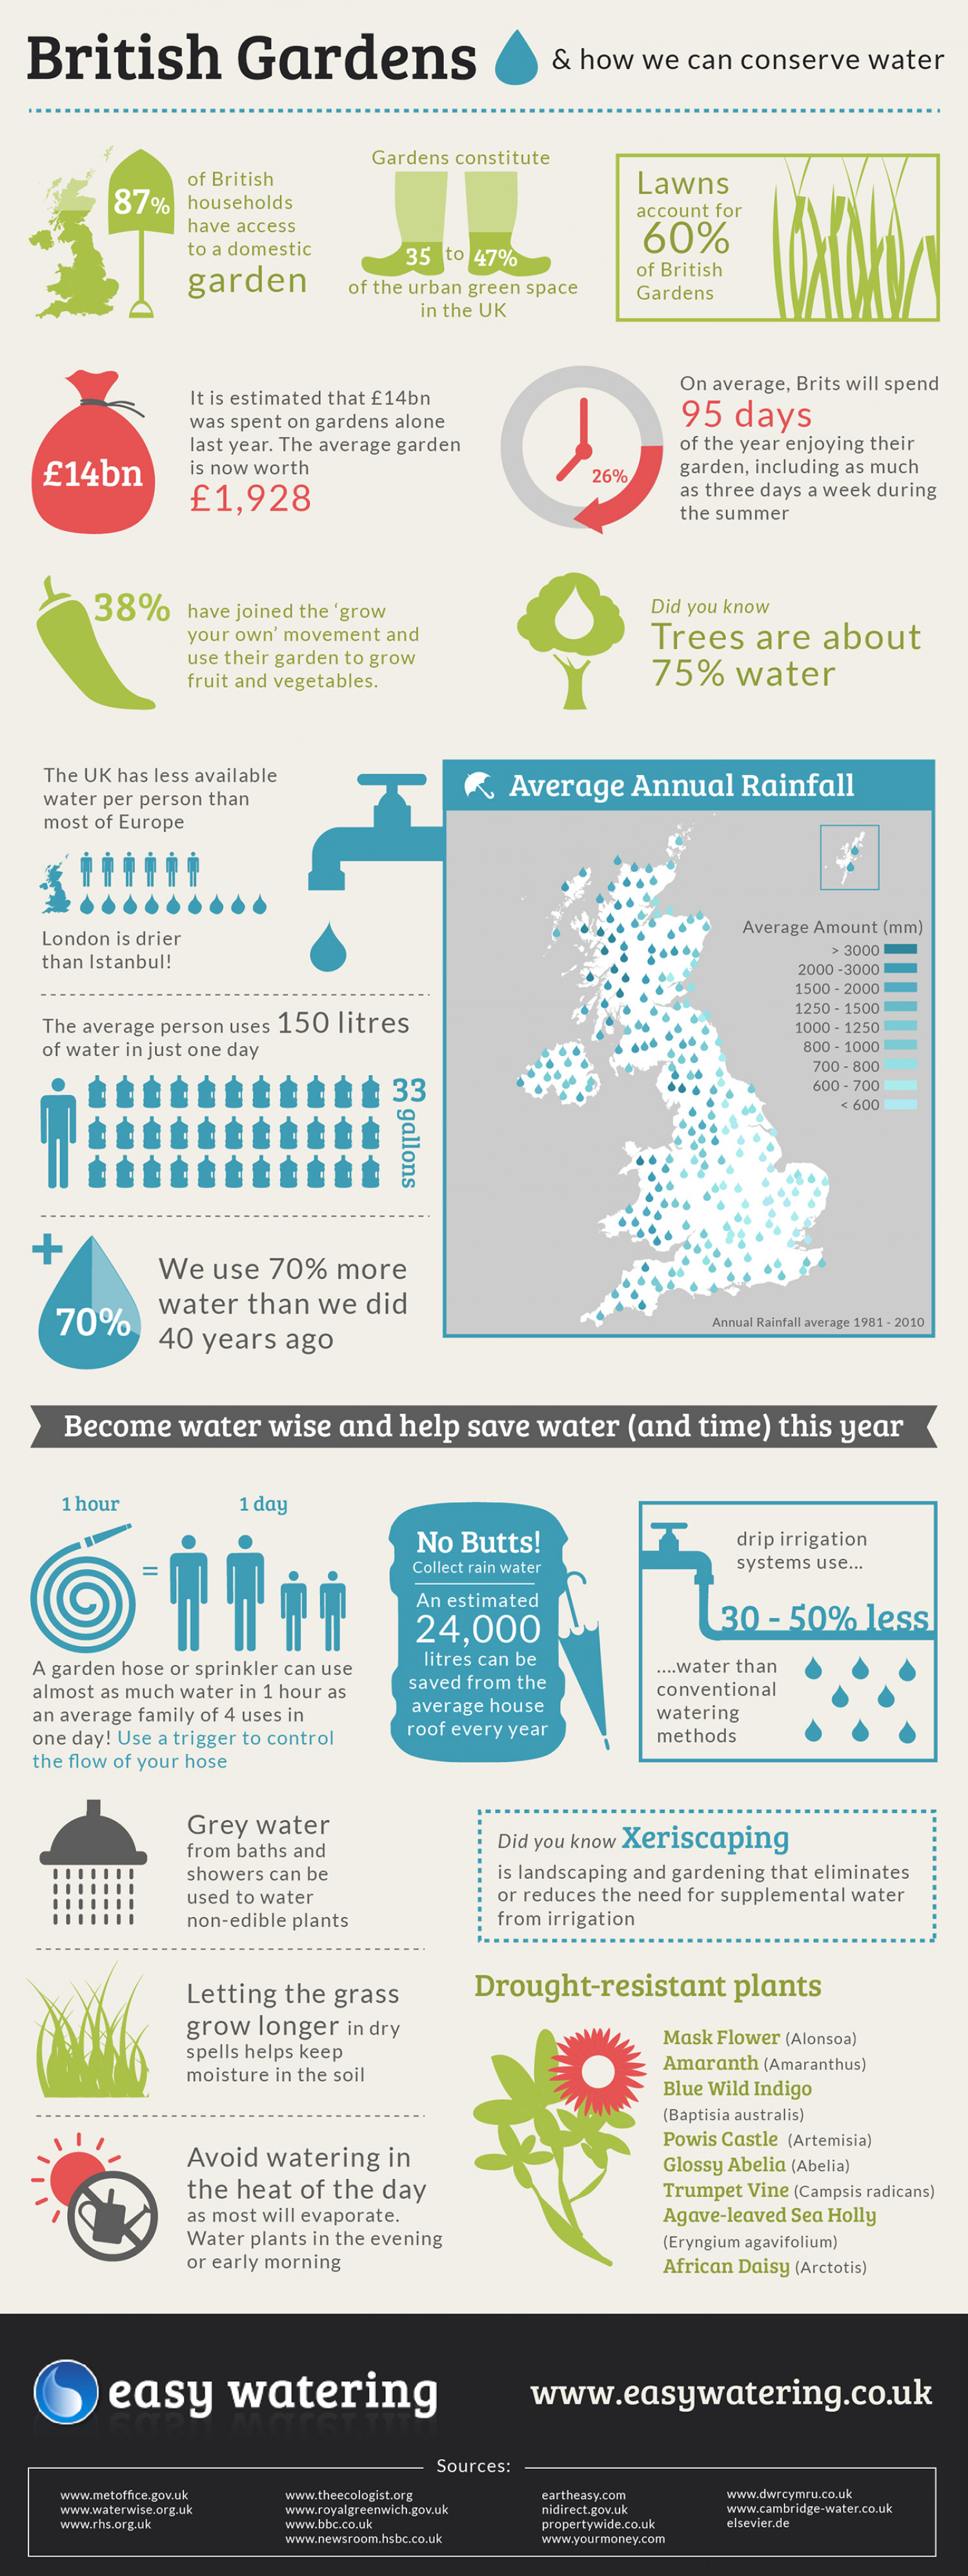 Saving Water in the Garden - Are you doing your bit? Infographic